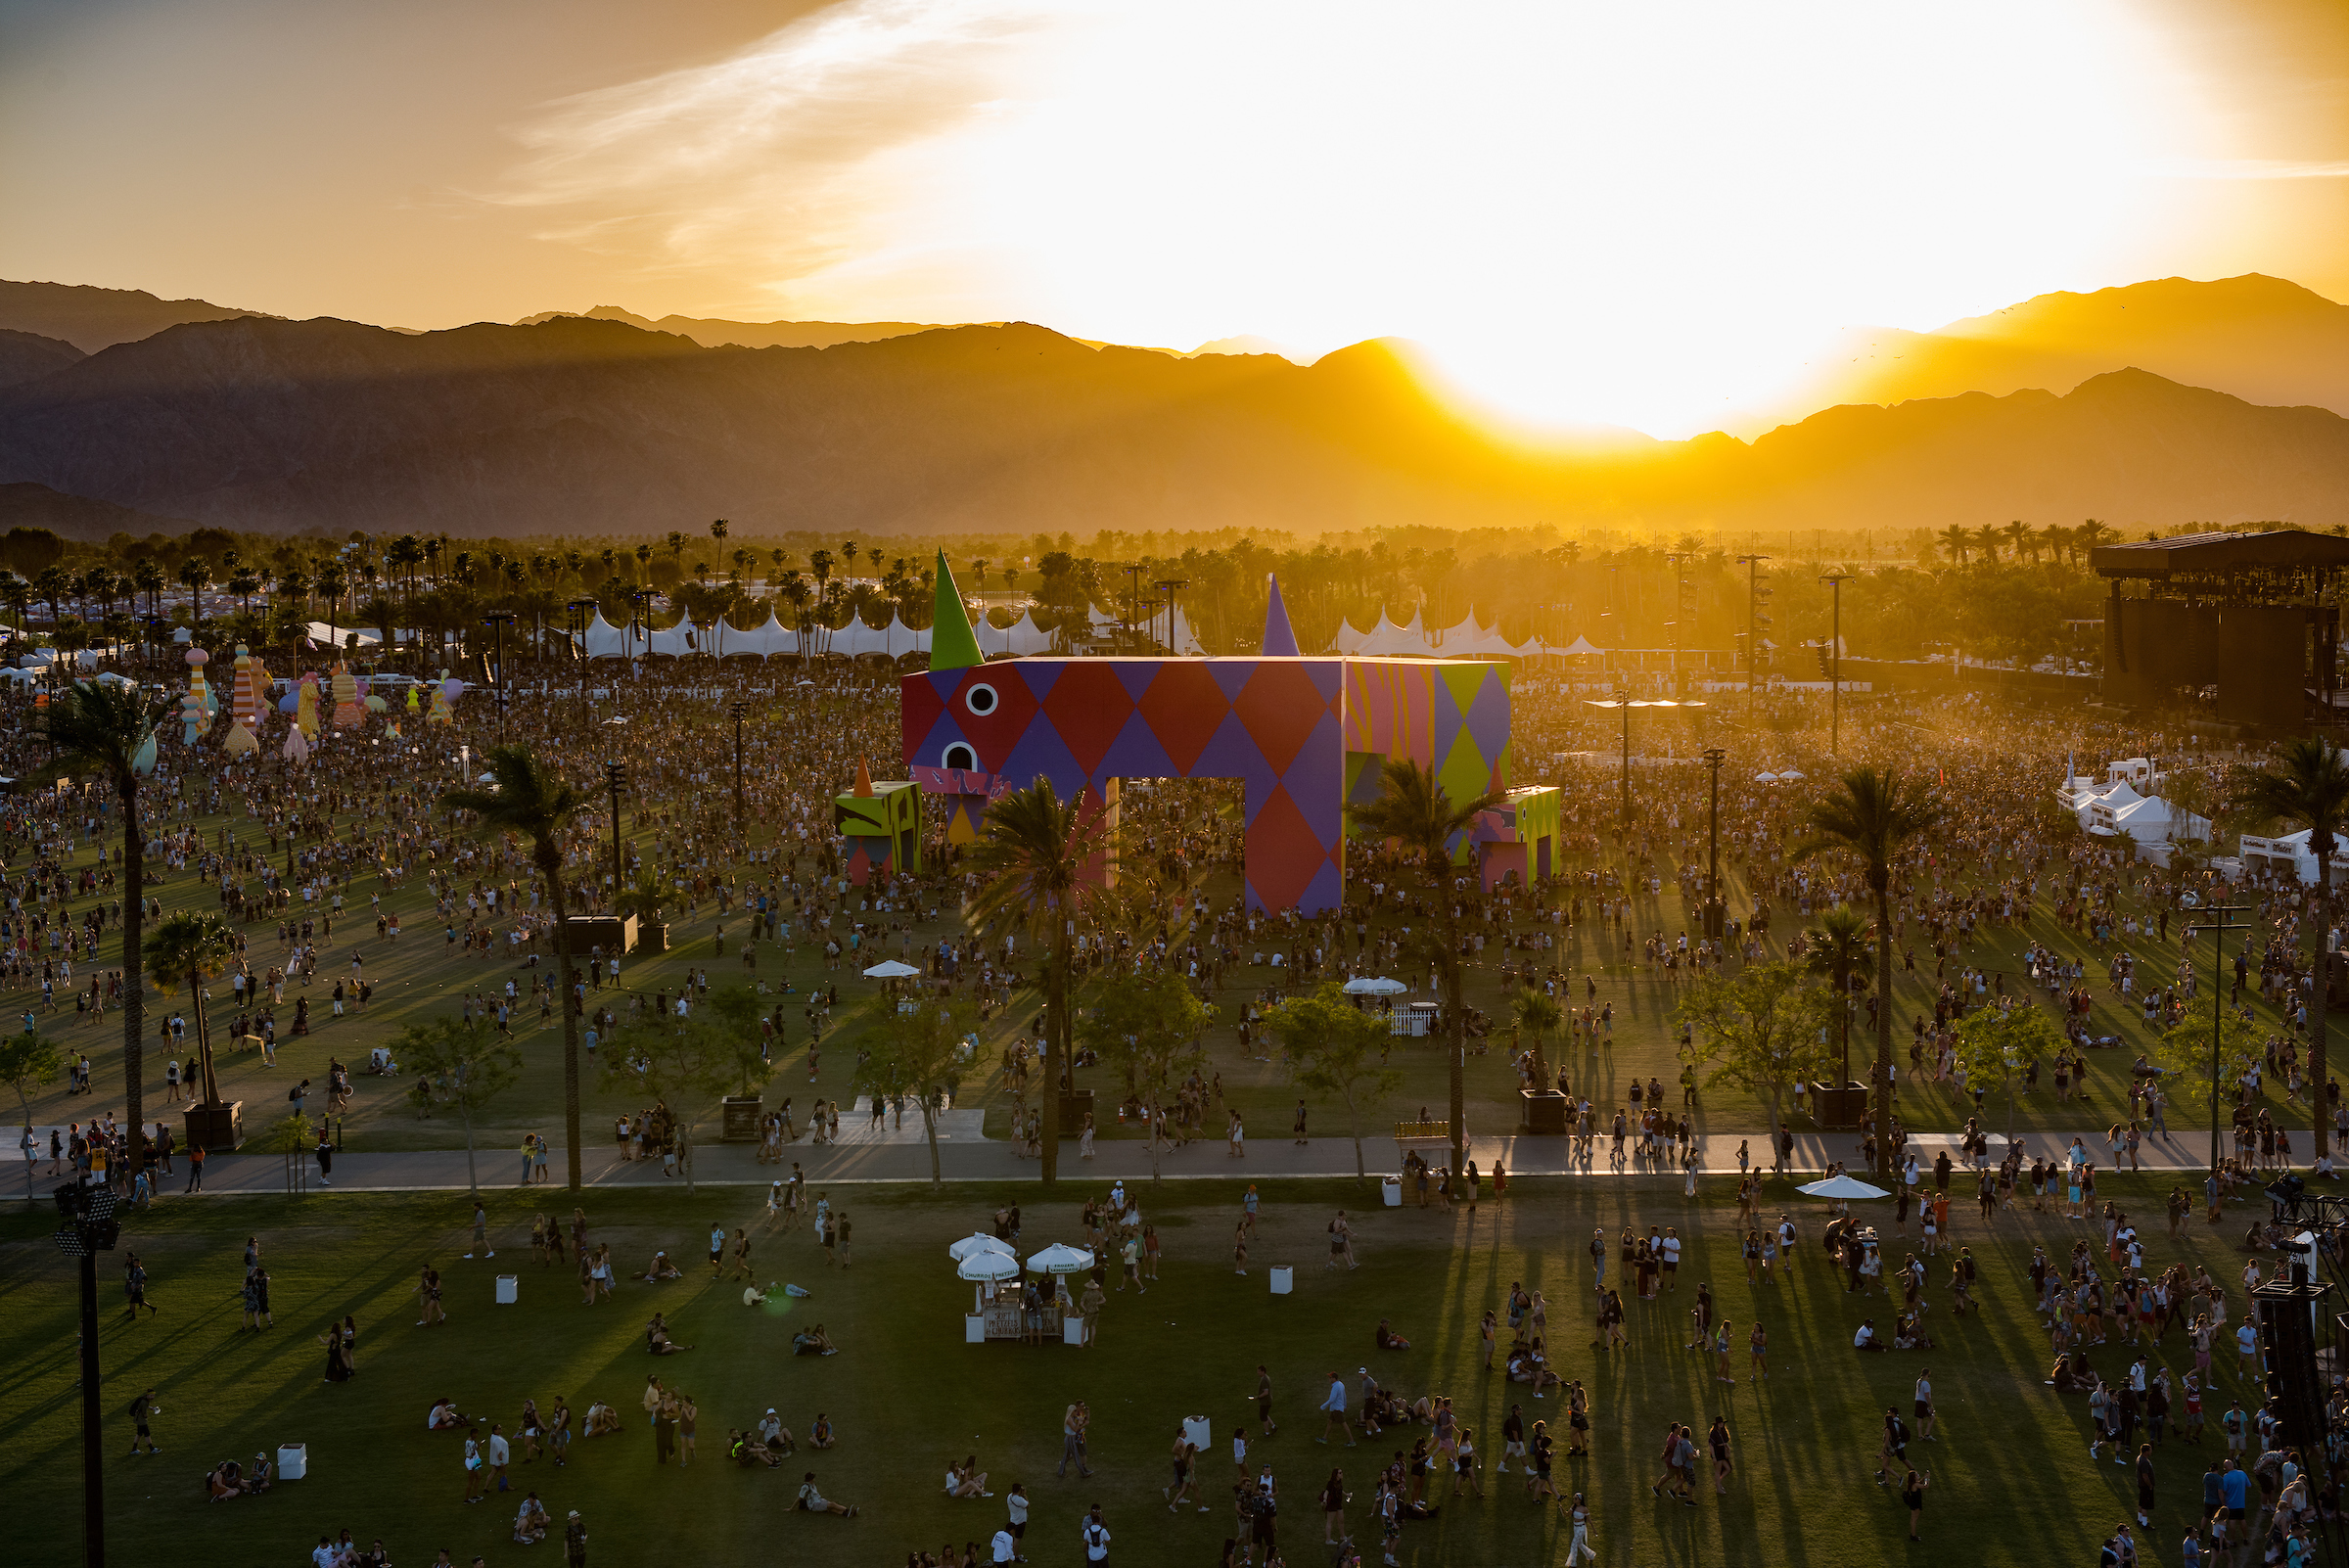 See the celebrities spotted at Coachella 2017